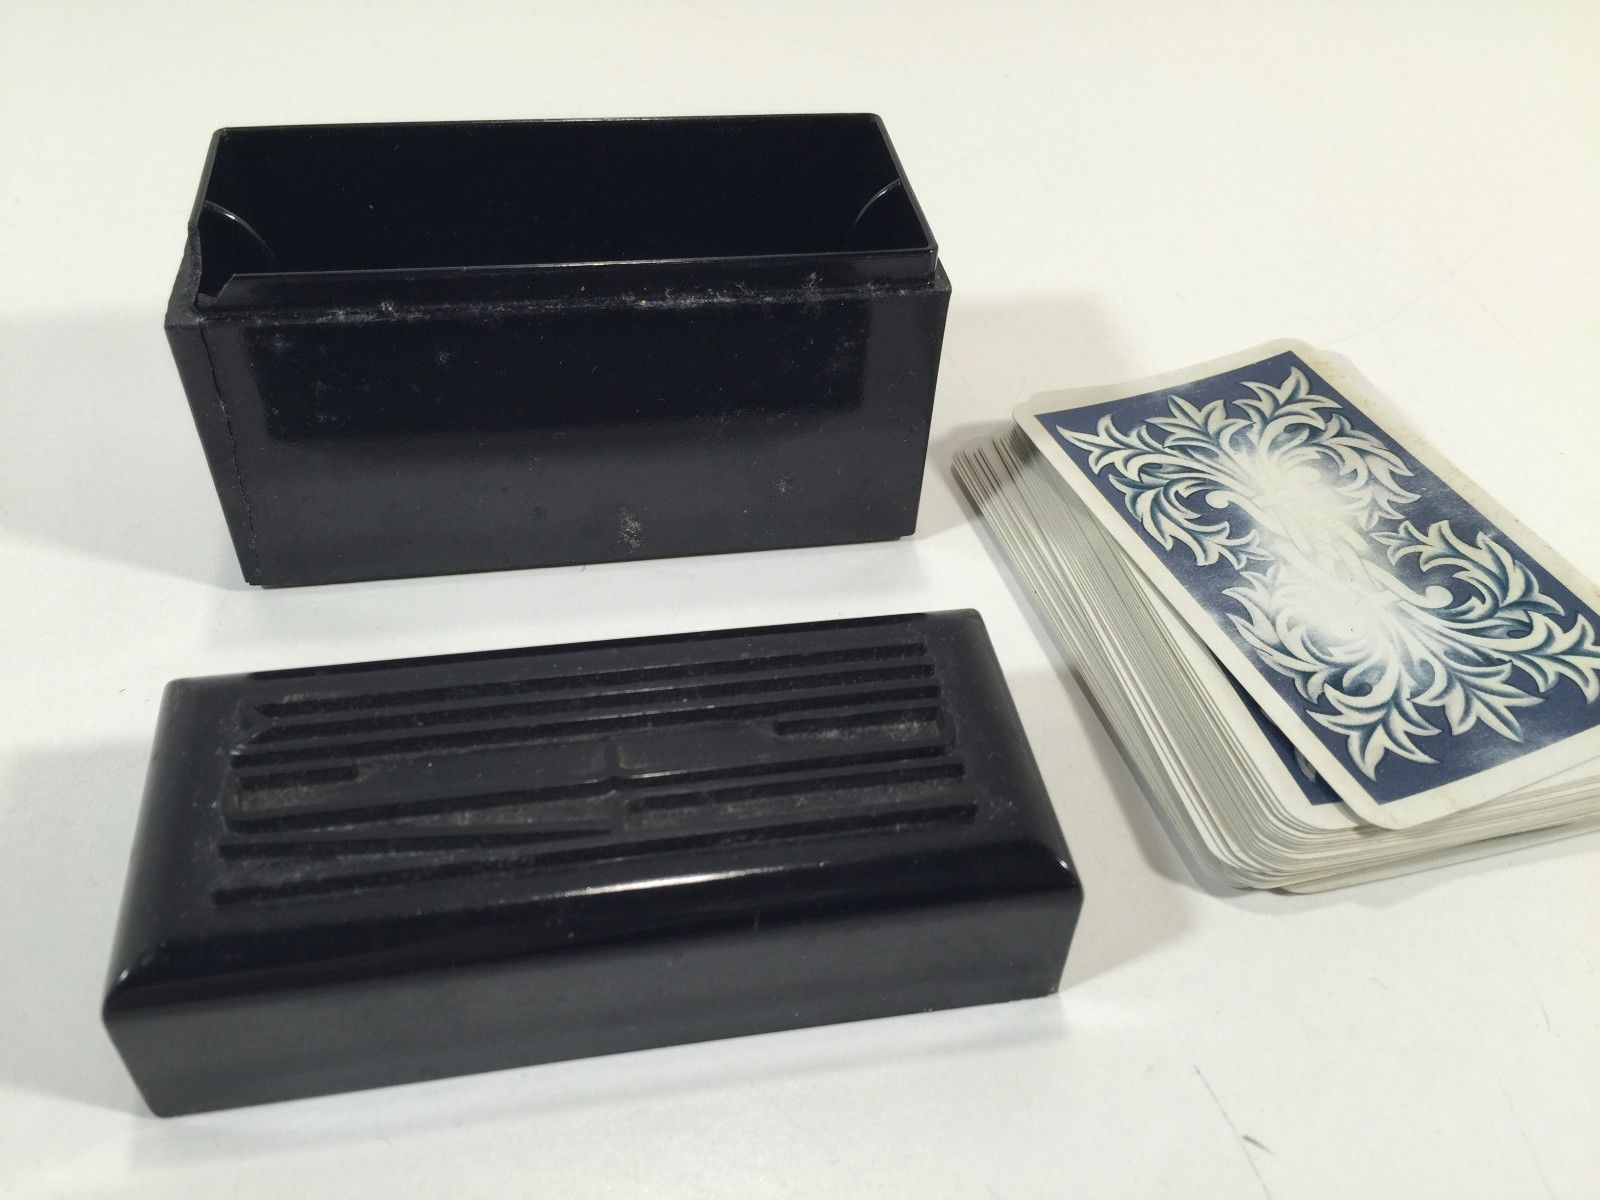 Vintage KEM Bakelite Double Playing Card Deck Case With Chip in Corner